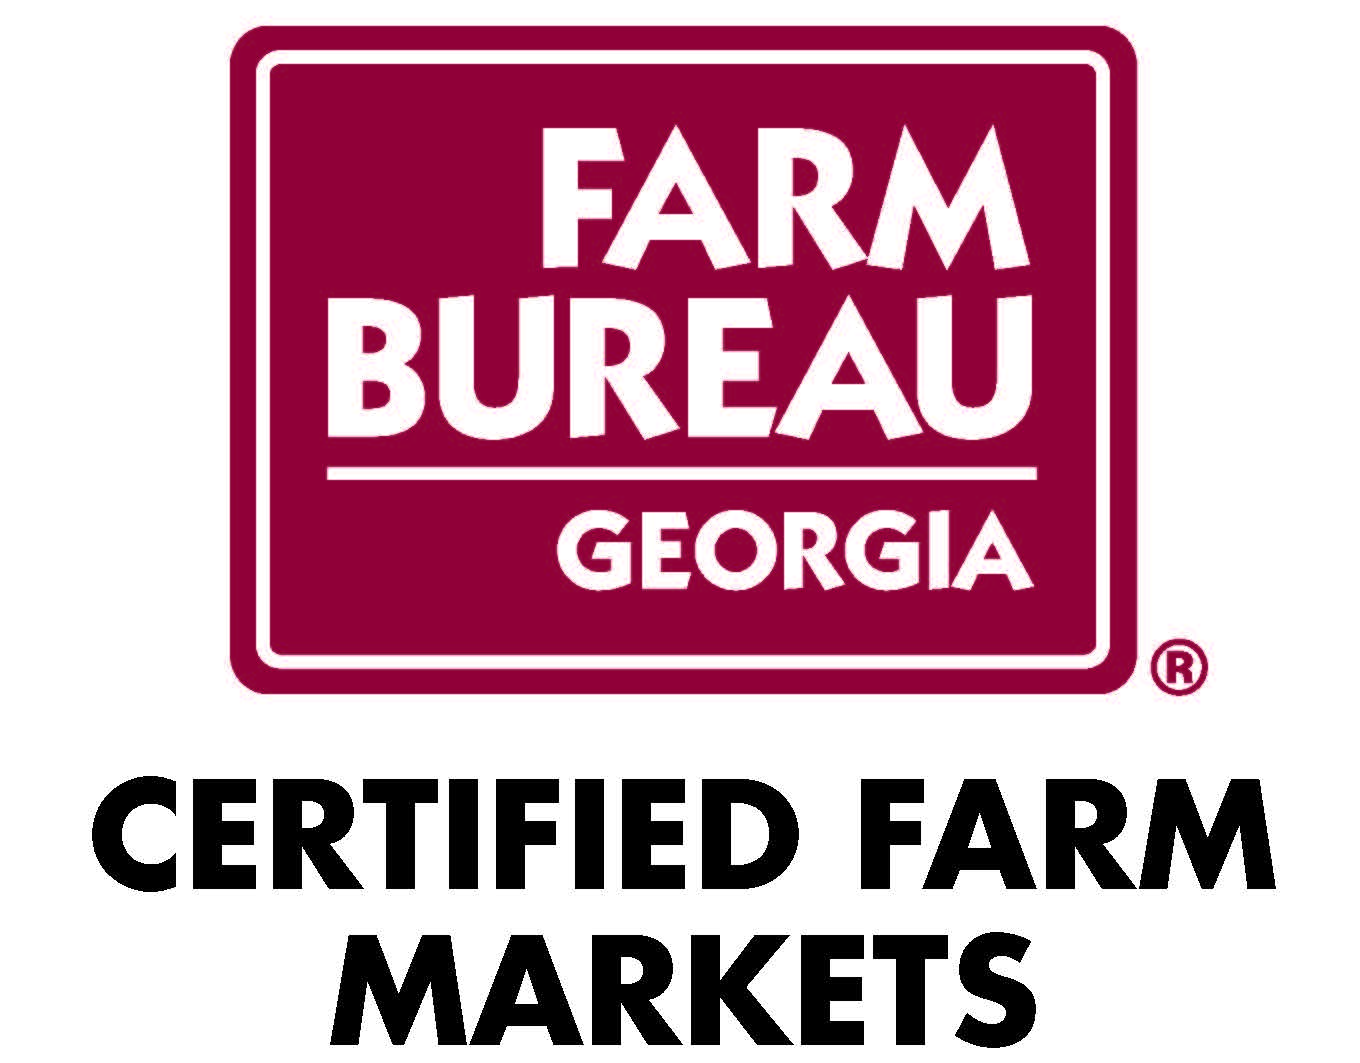 georgia-farm-logo.jpg